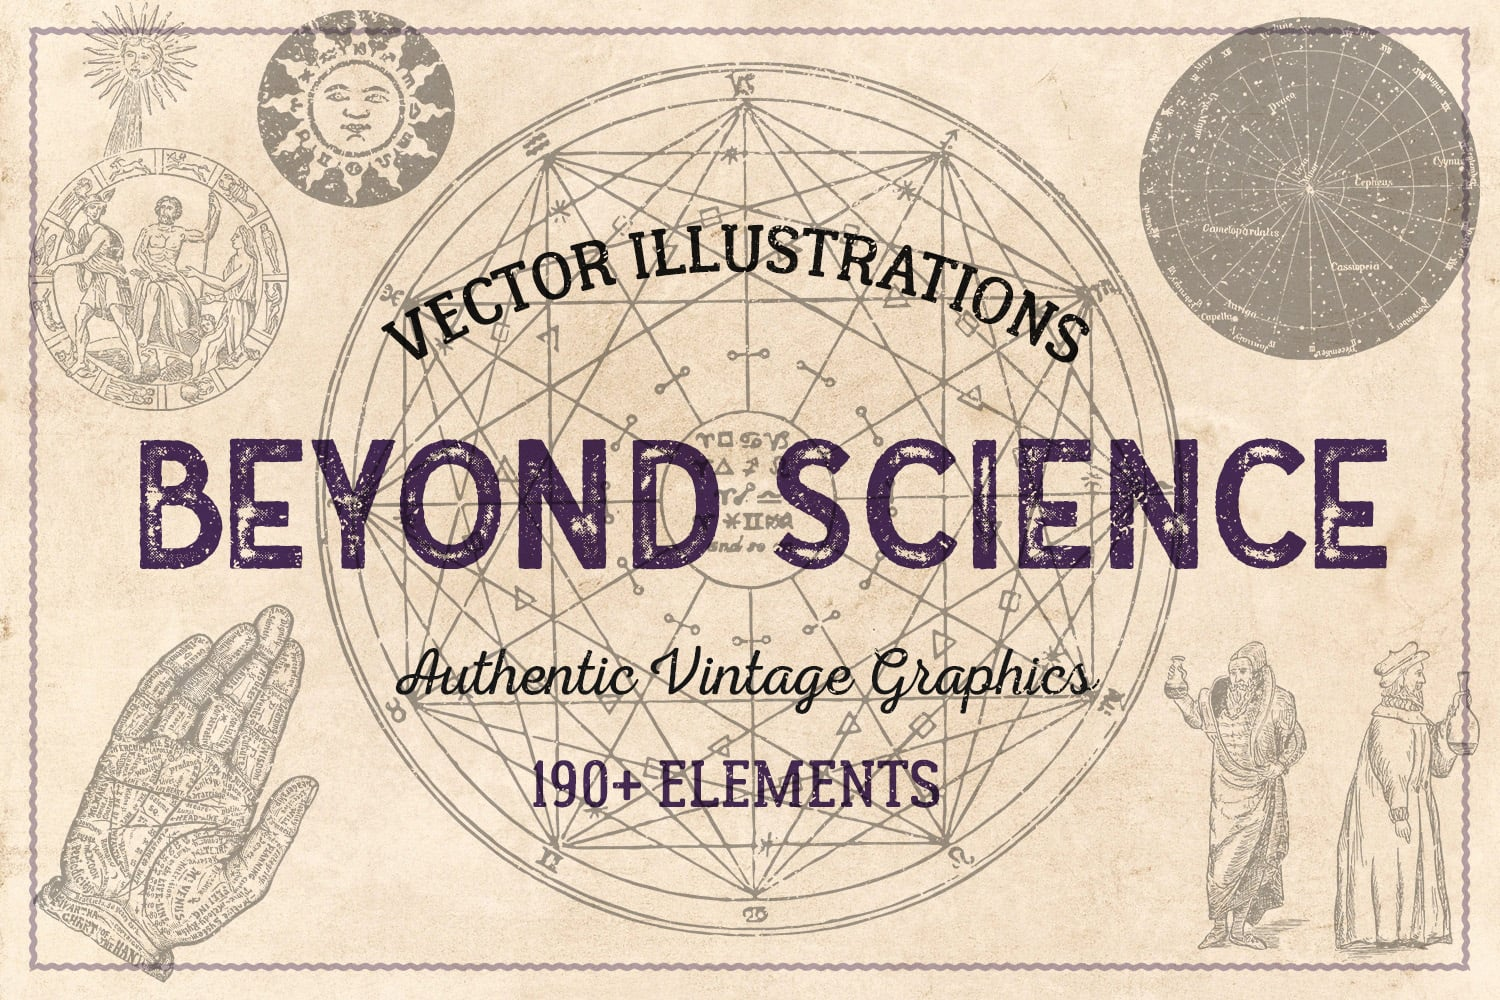 1000 Vintage Illustrations with 80% OFF - beyond cover